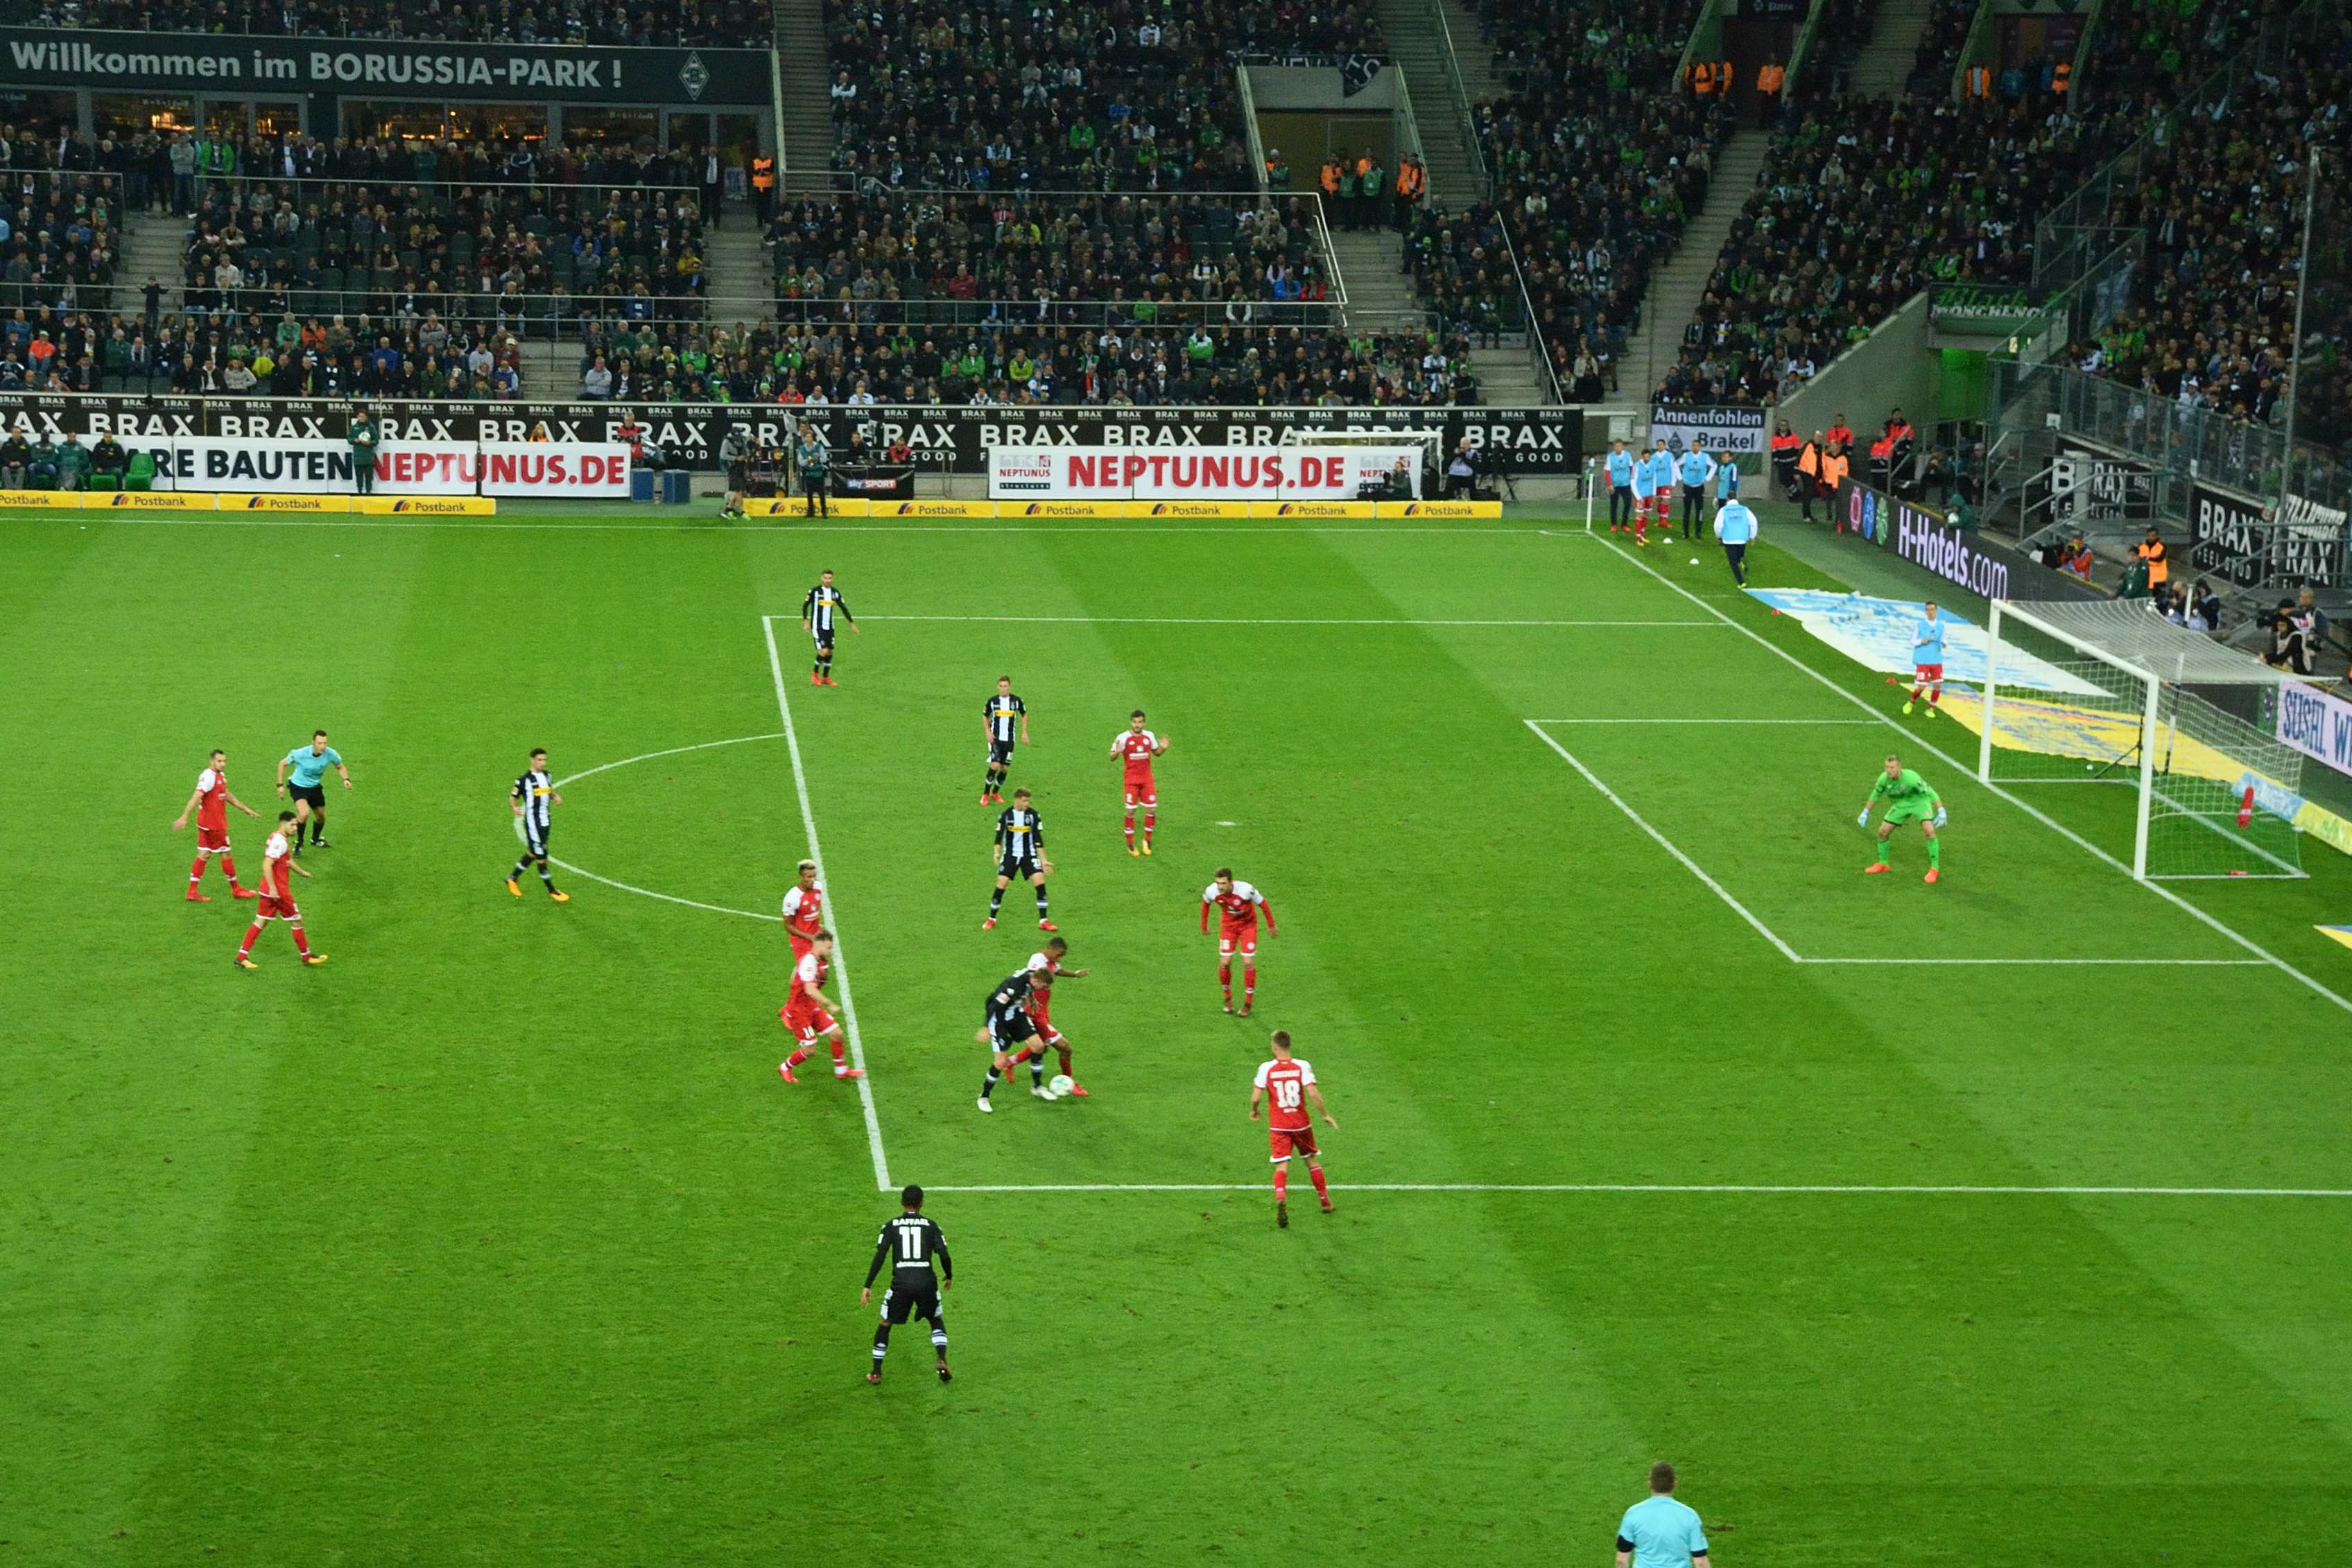 Football Nation 24/55 - Borussia Mönchengladbach 1-1 Mainz - Germany